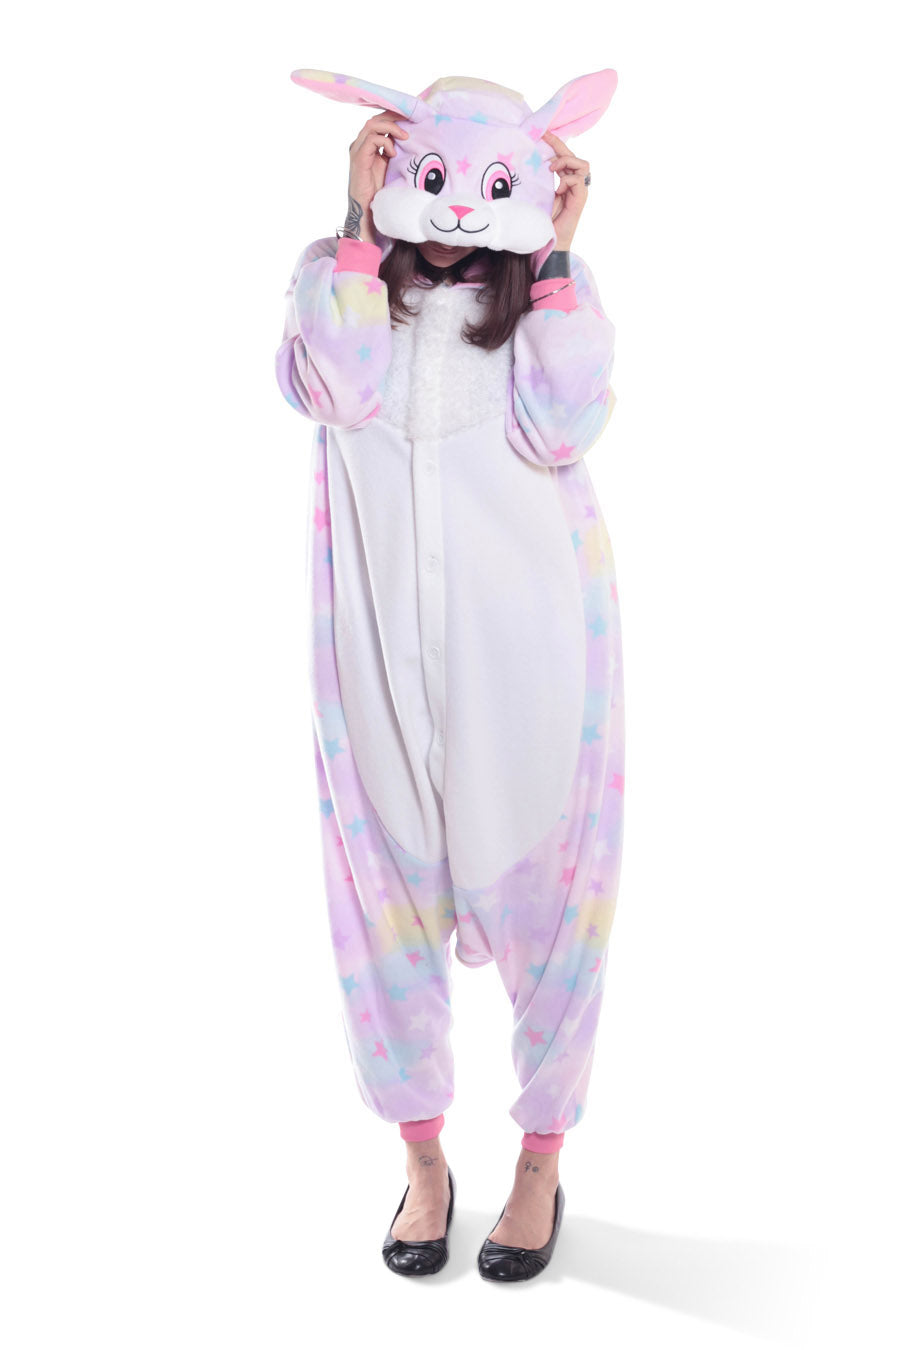 Pastel Dream Rabbit X-Tall Kigurumi Adult Onesie Costume Pajamas Animal Stars Front Main